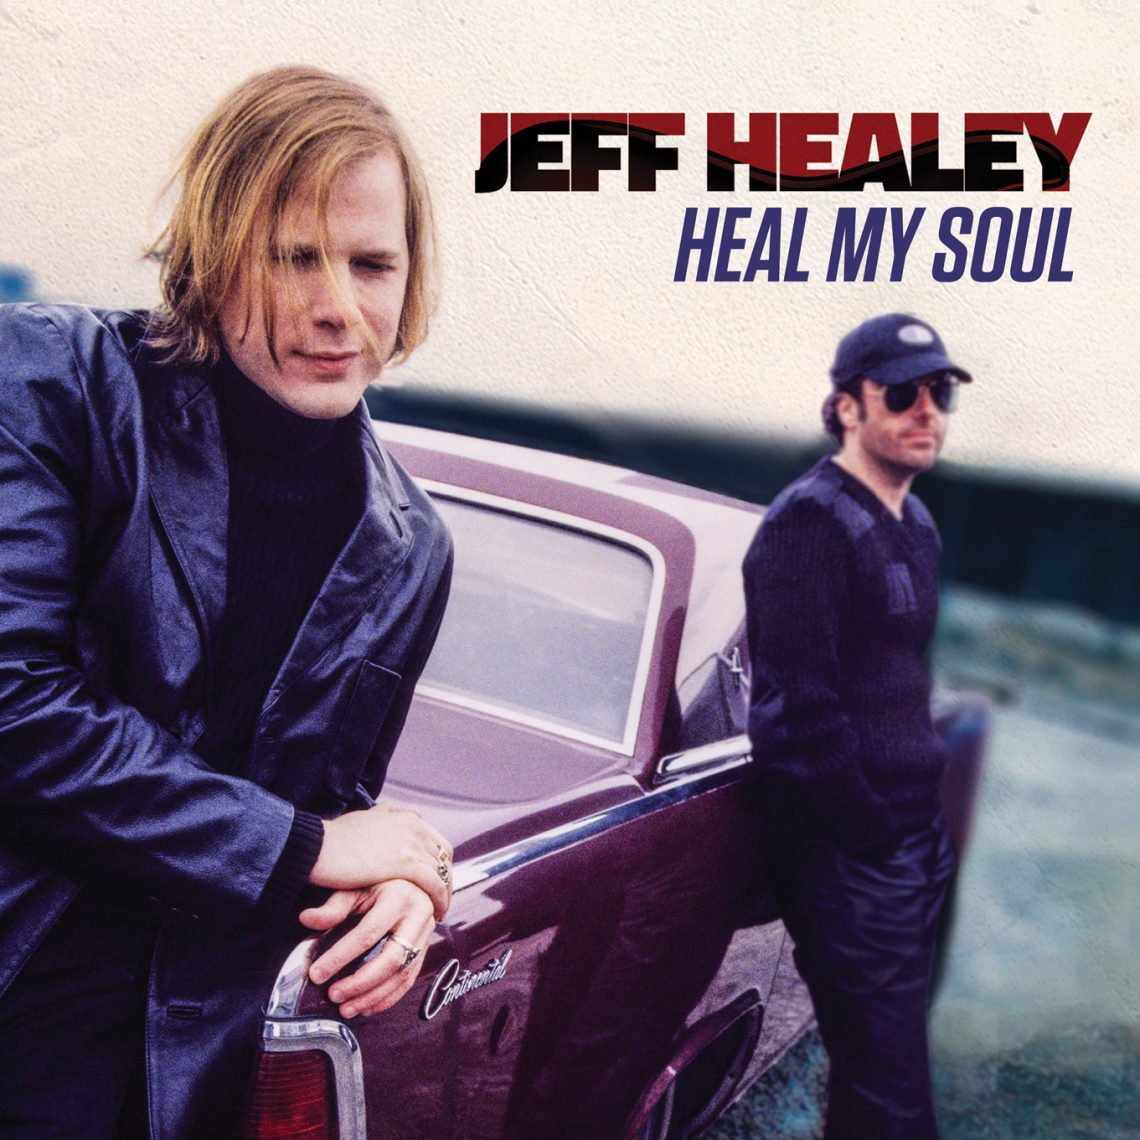 PROVOGUE COMMEMORATES JEFF HEALEY'S 50TH BIRTHDAY WITH RELEASE OF 12 ORIGINAL SONGS ON ALBUM 'HEAL MY SOUL'